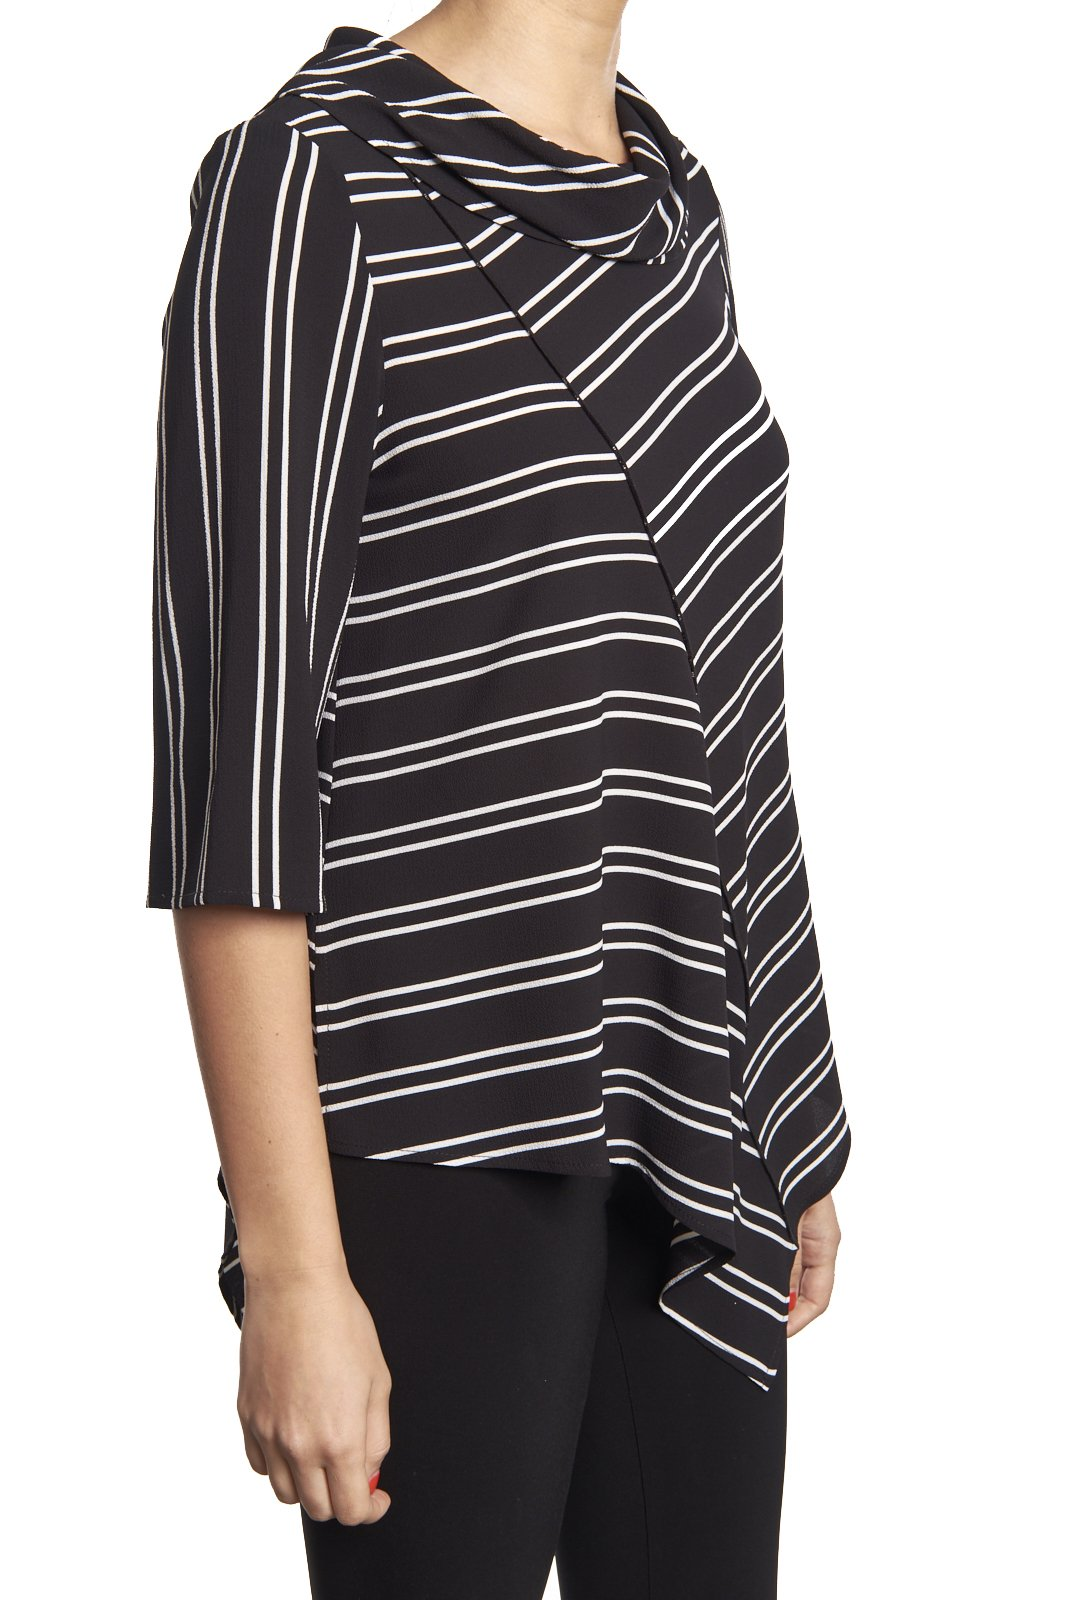 Joseph Ribkoff Striped Bias Cut Tunic Style 182931 Size 4 by Joseph Ribkoff